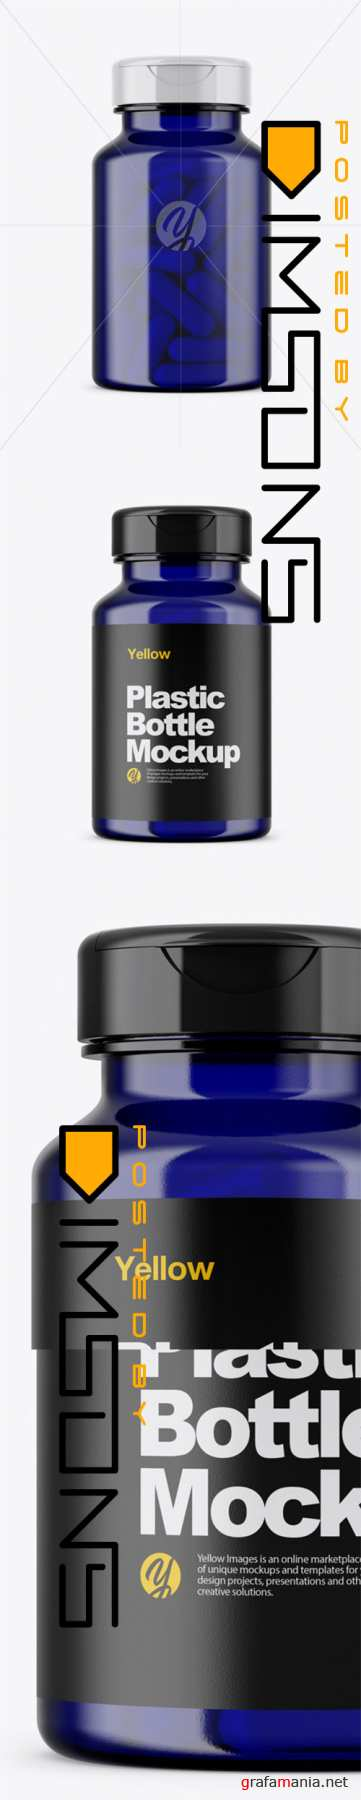 Blue Pills Bottle Mockup 44840 TIF